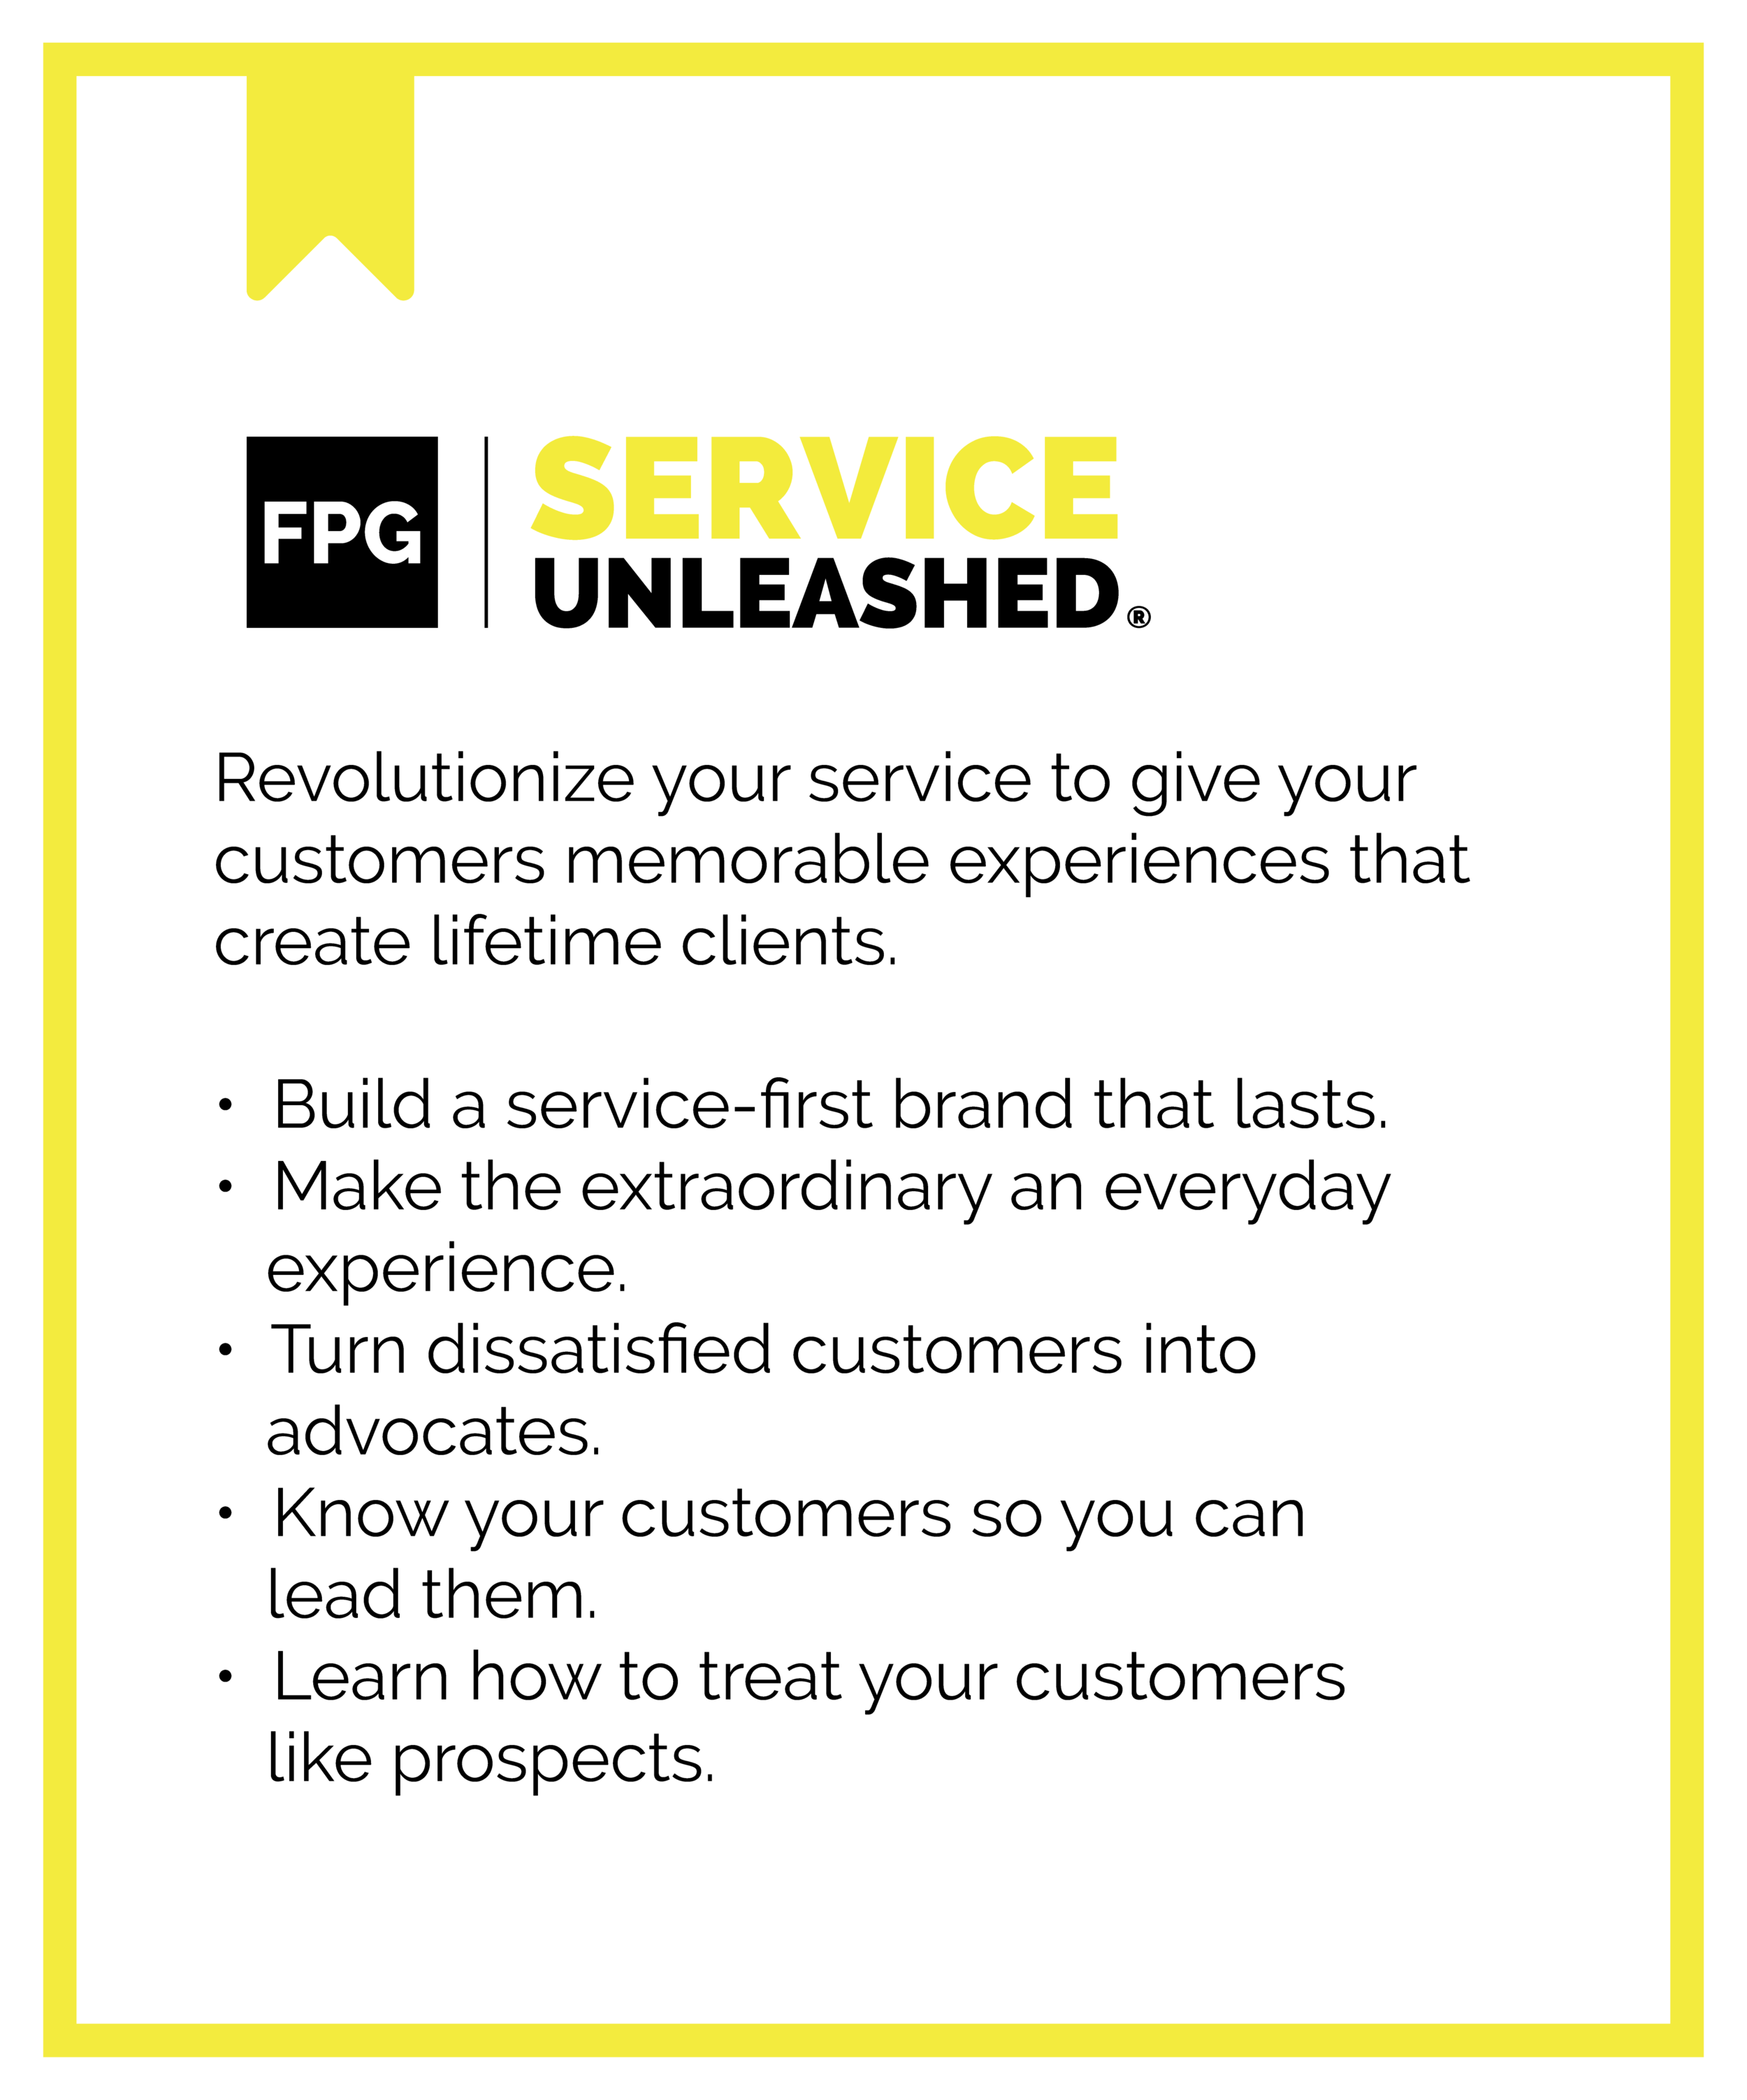 FPG Service Unleashed. Revolutionize your service to give your customers memorable experiences that create lifetime clients. Build a service-first brand that lasts. Make the extraordinary an everyday experience. Turn dissatisfied customers into advocates. Know your customers so you can lead them. Learn how to treat your customers like prospects.